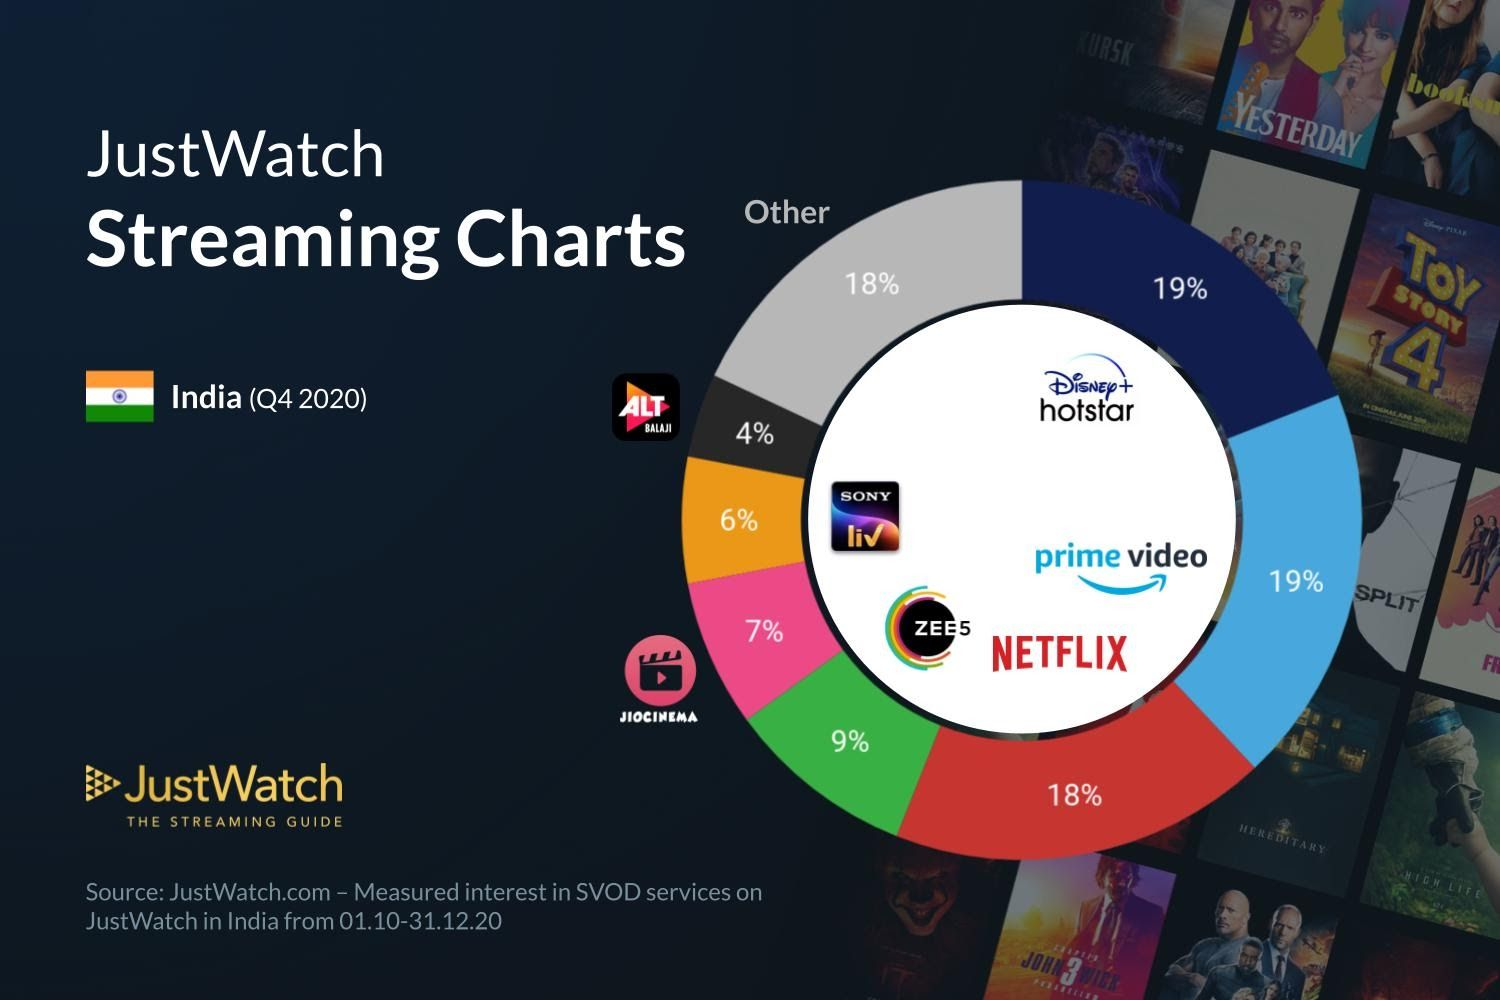 Disney+ Hotstar tied with Prime Video in the Q4 2020 to become the top OTT platform in India